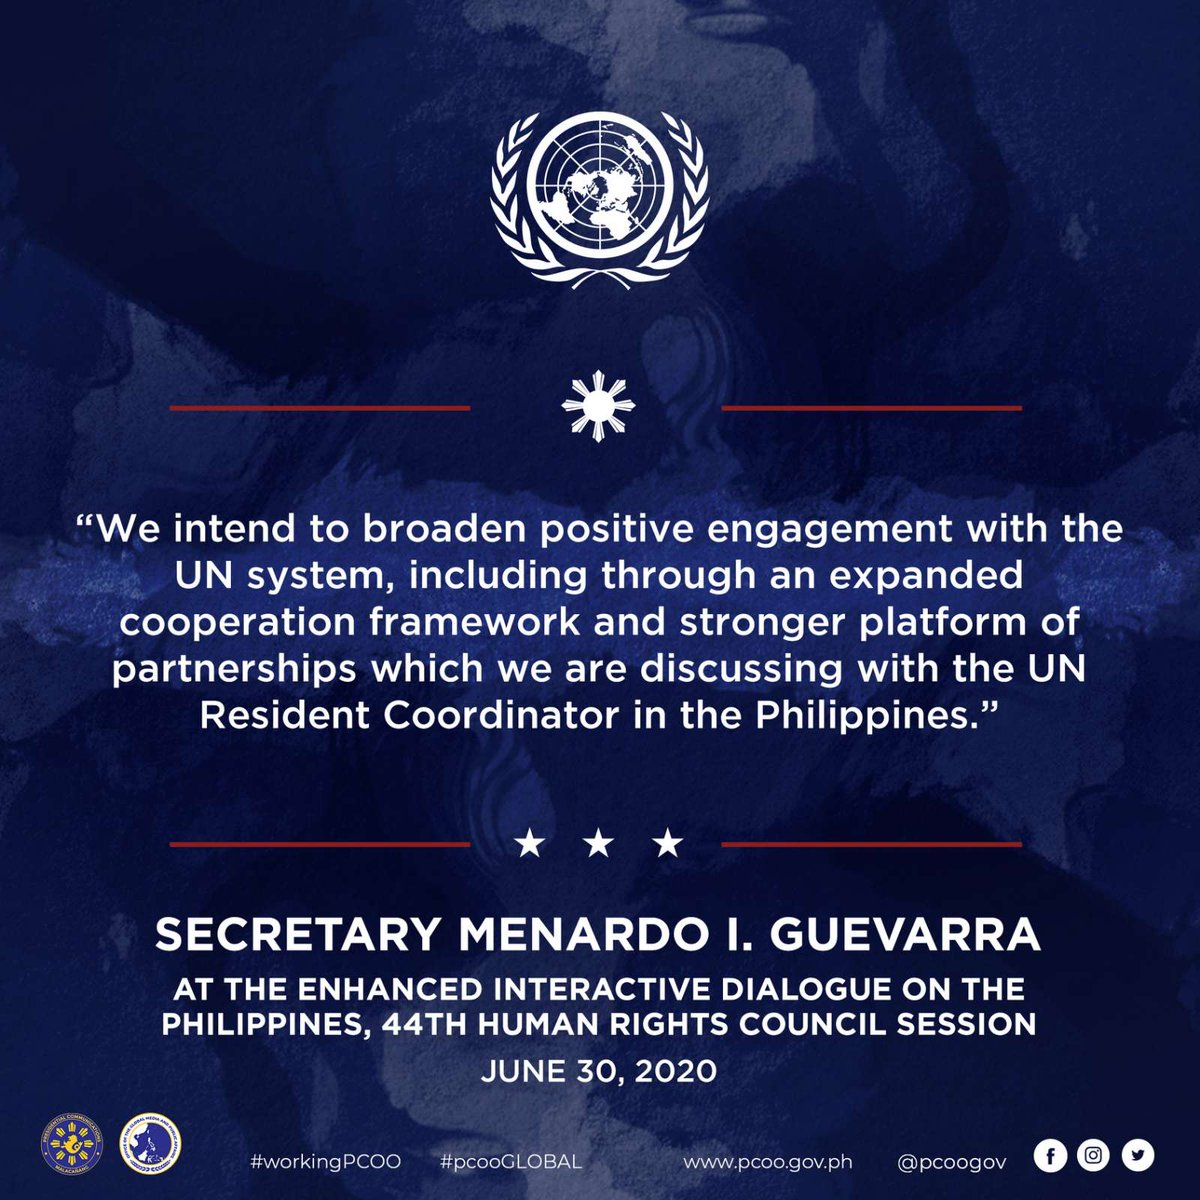 At the Enhanced Interactive Dialogue on the Philippines of the 44th Human Rights Council Session on June 30, 2020,  @DOJPH Secretary Menardo Guevarra delivered a virtual speech highlighting the mechanisms of the Duterte Administration to promote transparency and accountability. https://t.co/zD7qL680rU